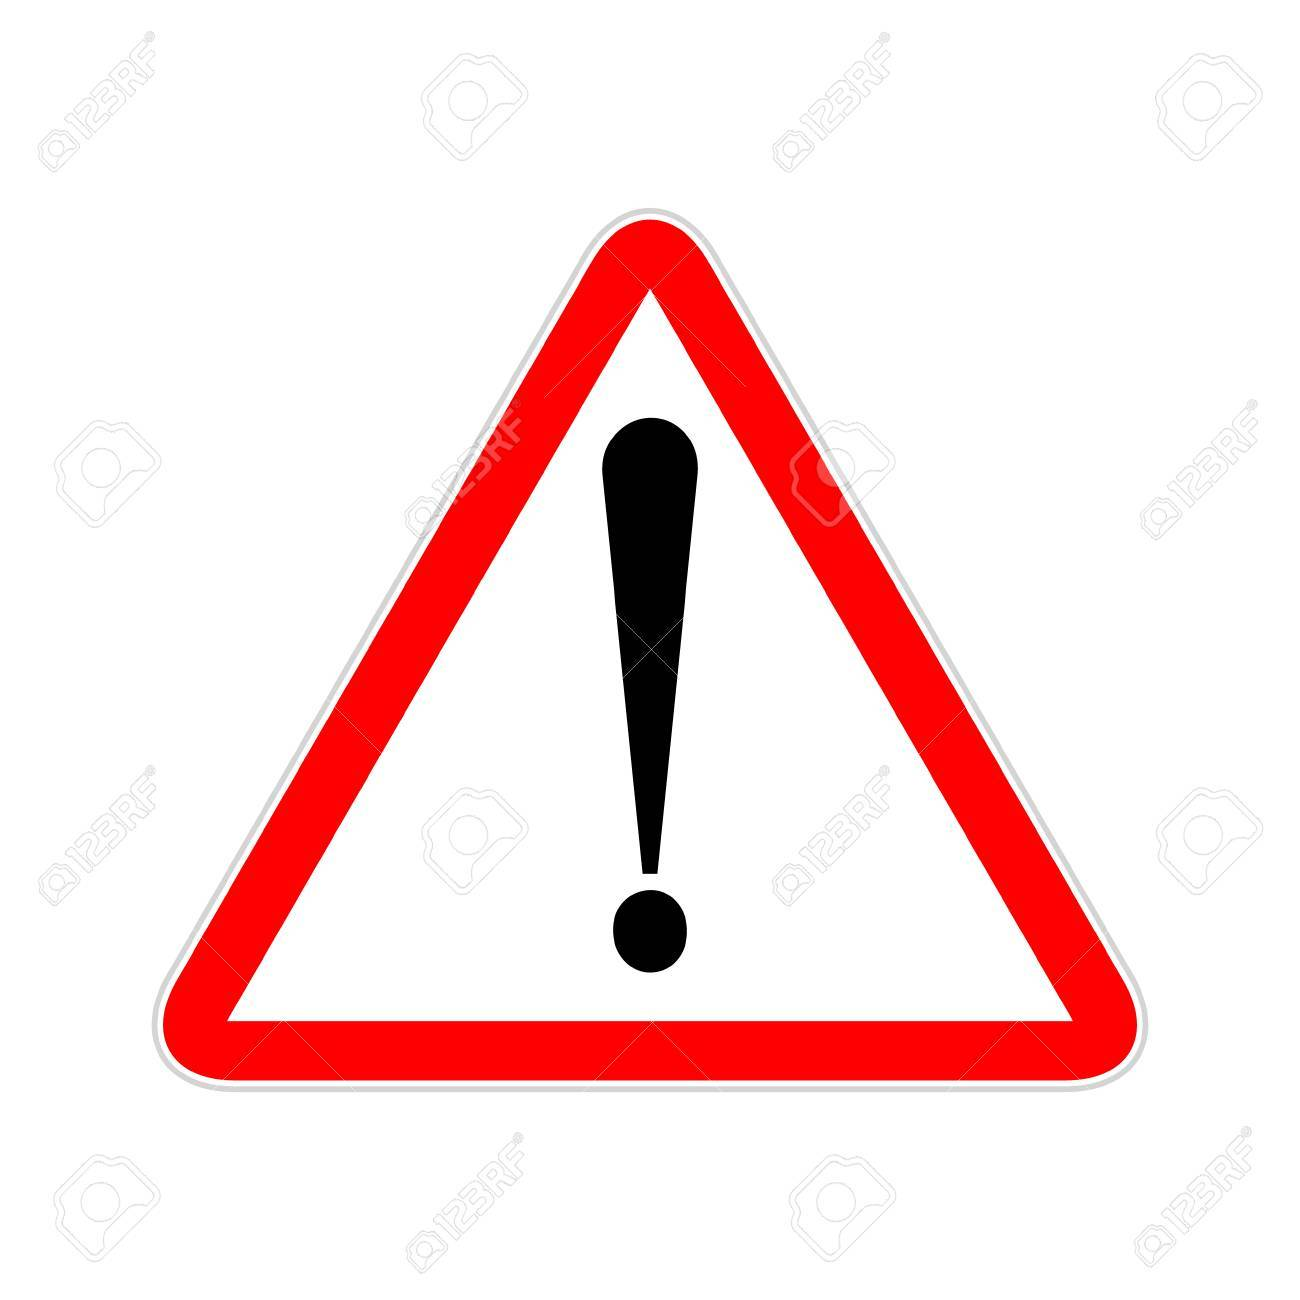 Attention sign symbol triangle. Caution icon exclamation. Alert road sign. - 87611969